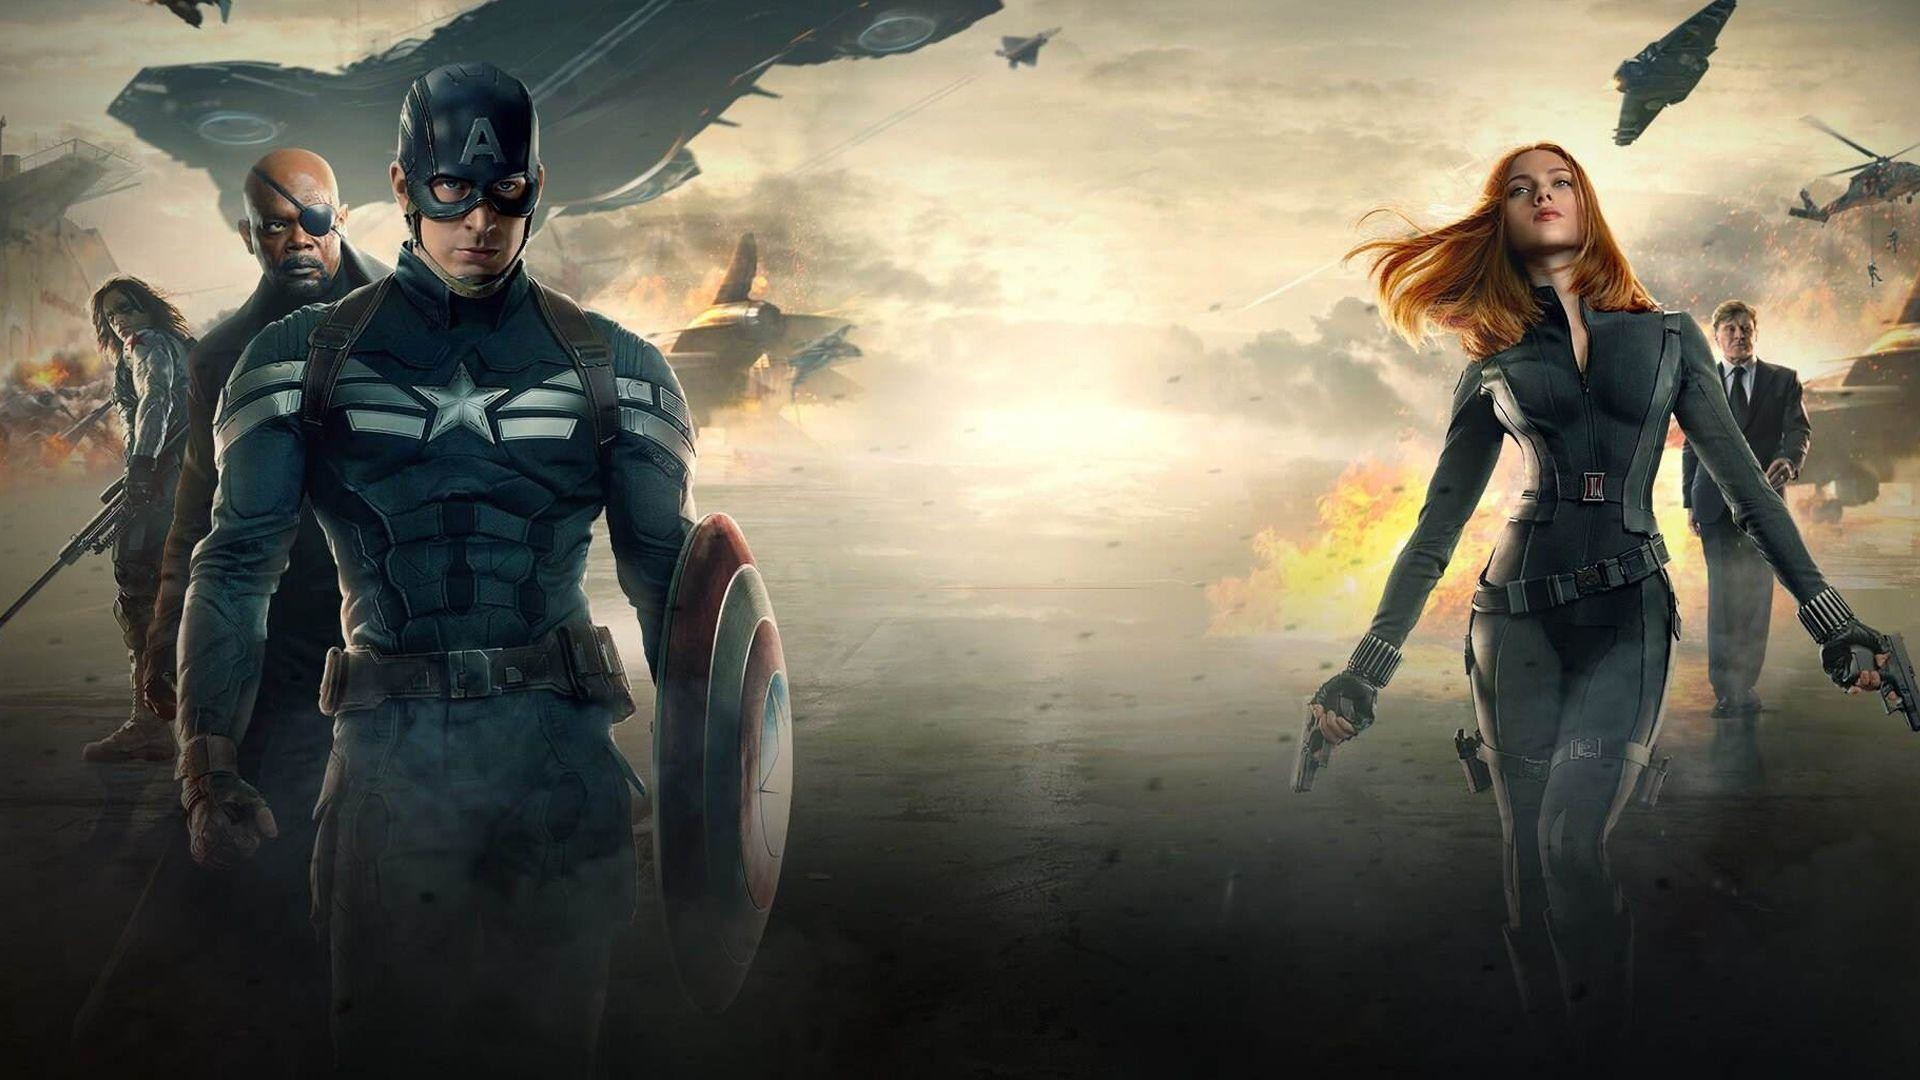 1920x1080 Captain America Winter Soldier Wallpaper - WallpaperSafari